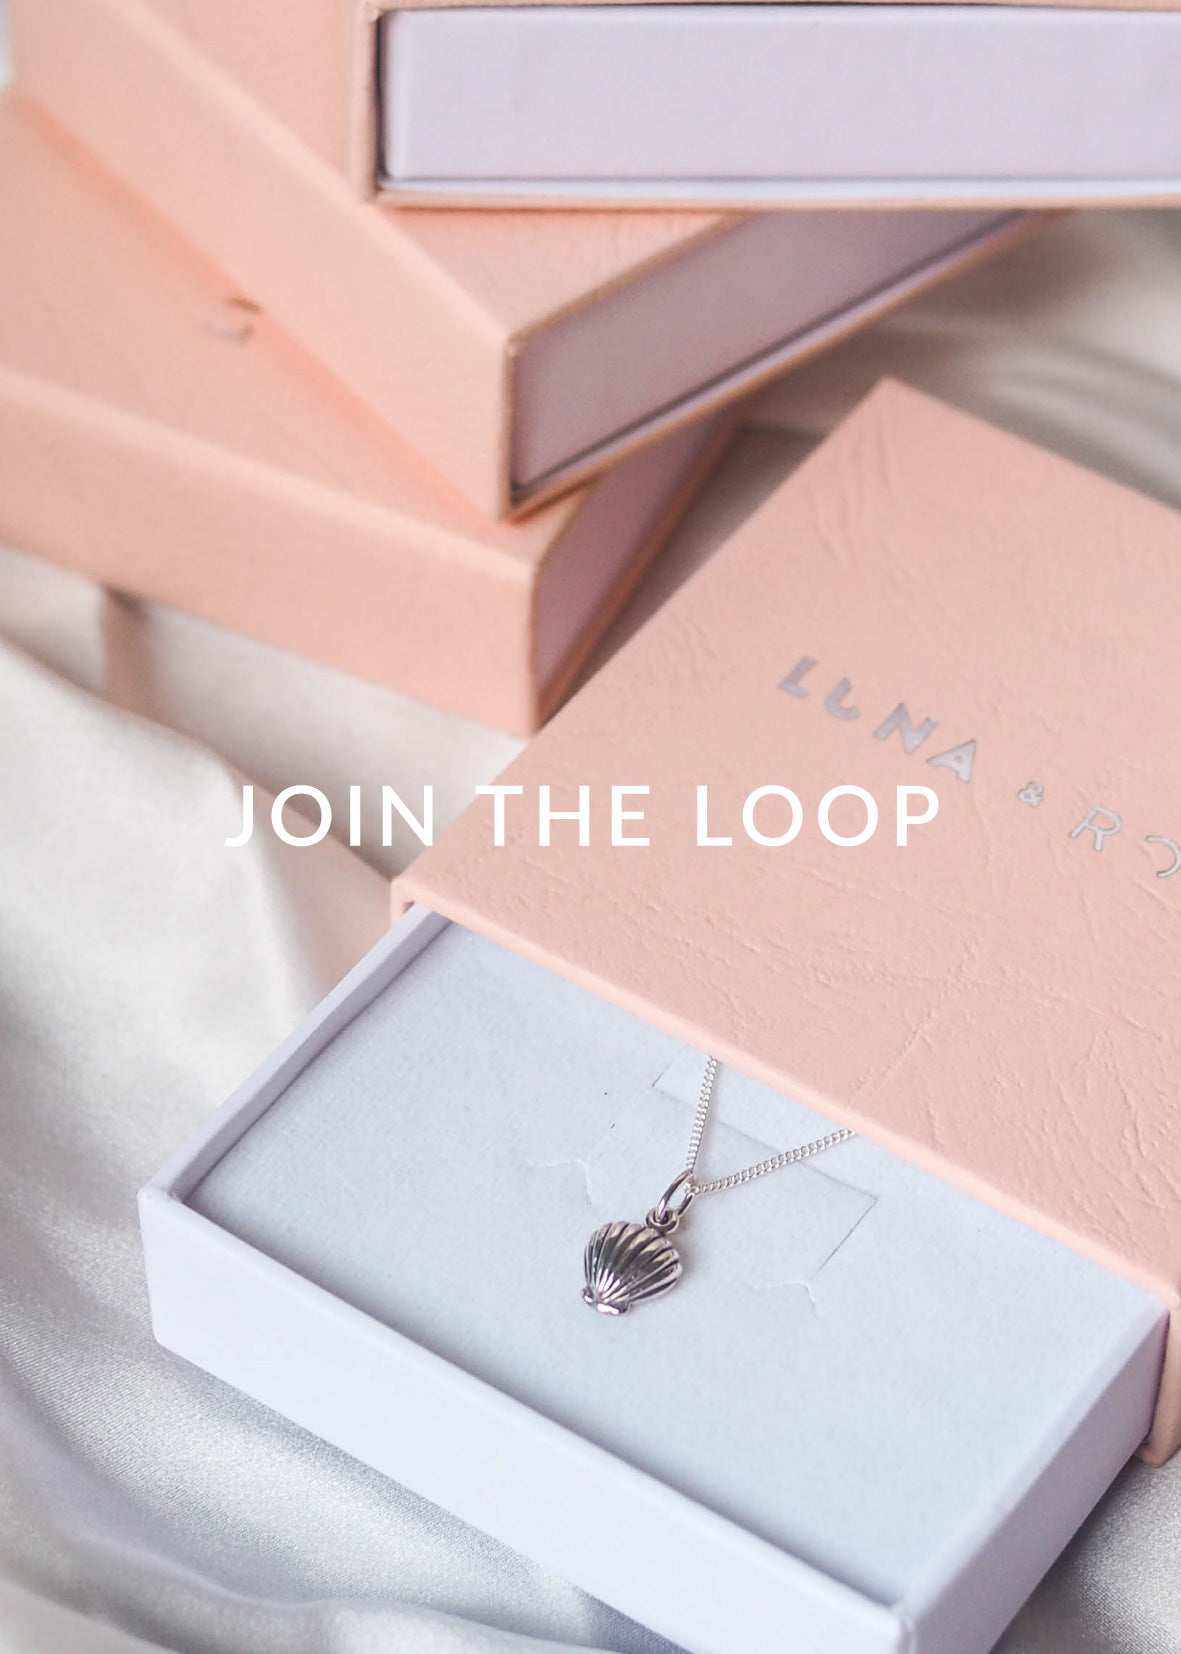 Recycle Your old jewellery with our closed loop